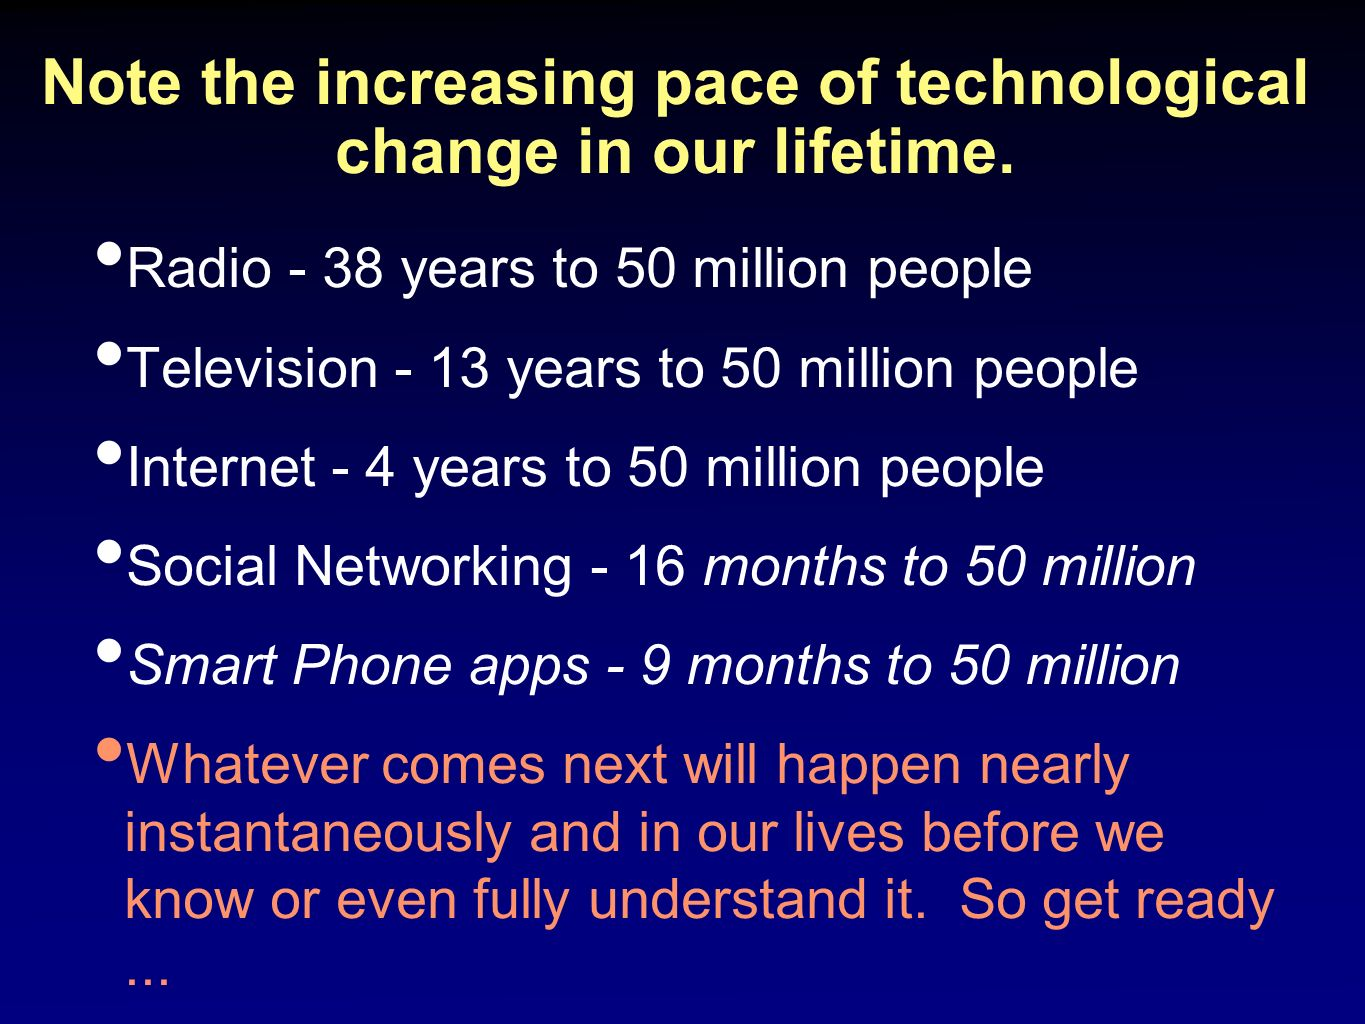 Note the increasing pace of technological change in our lifetime.